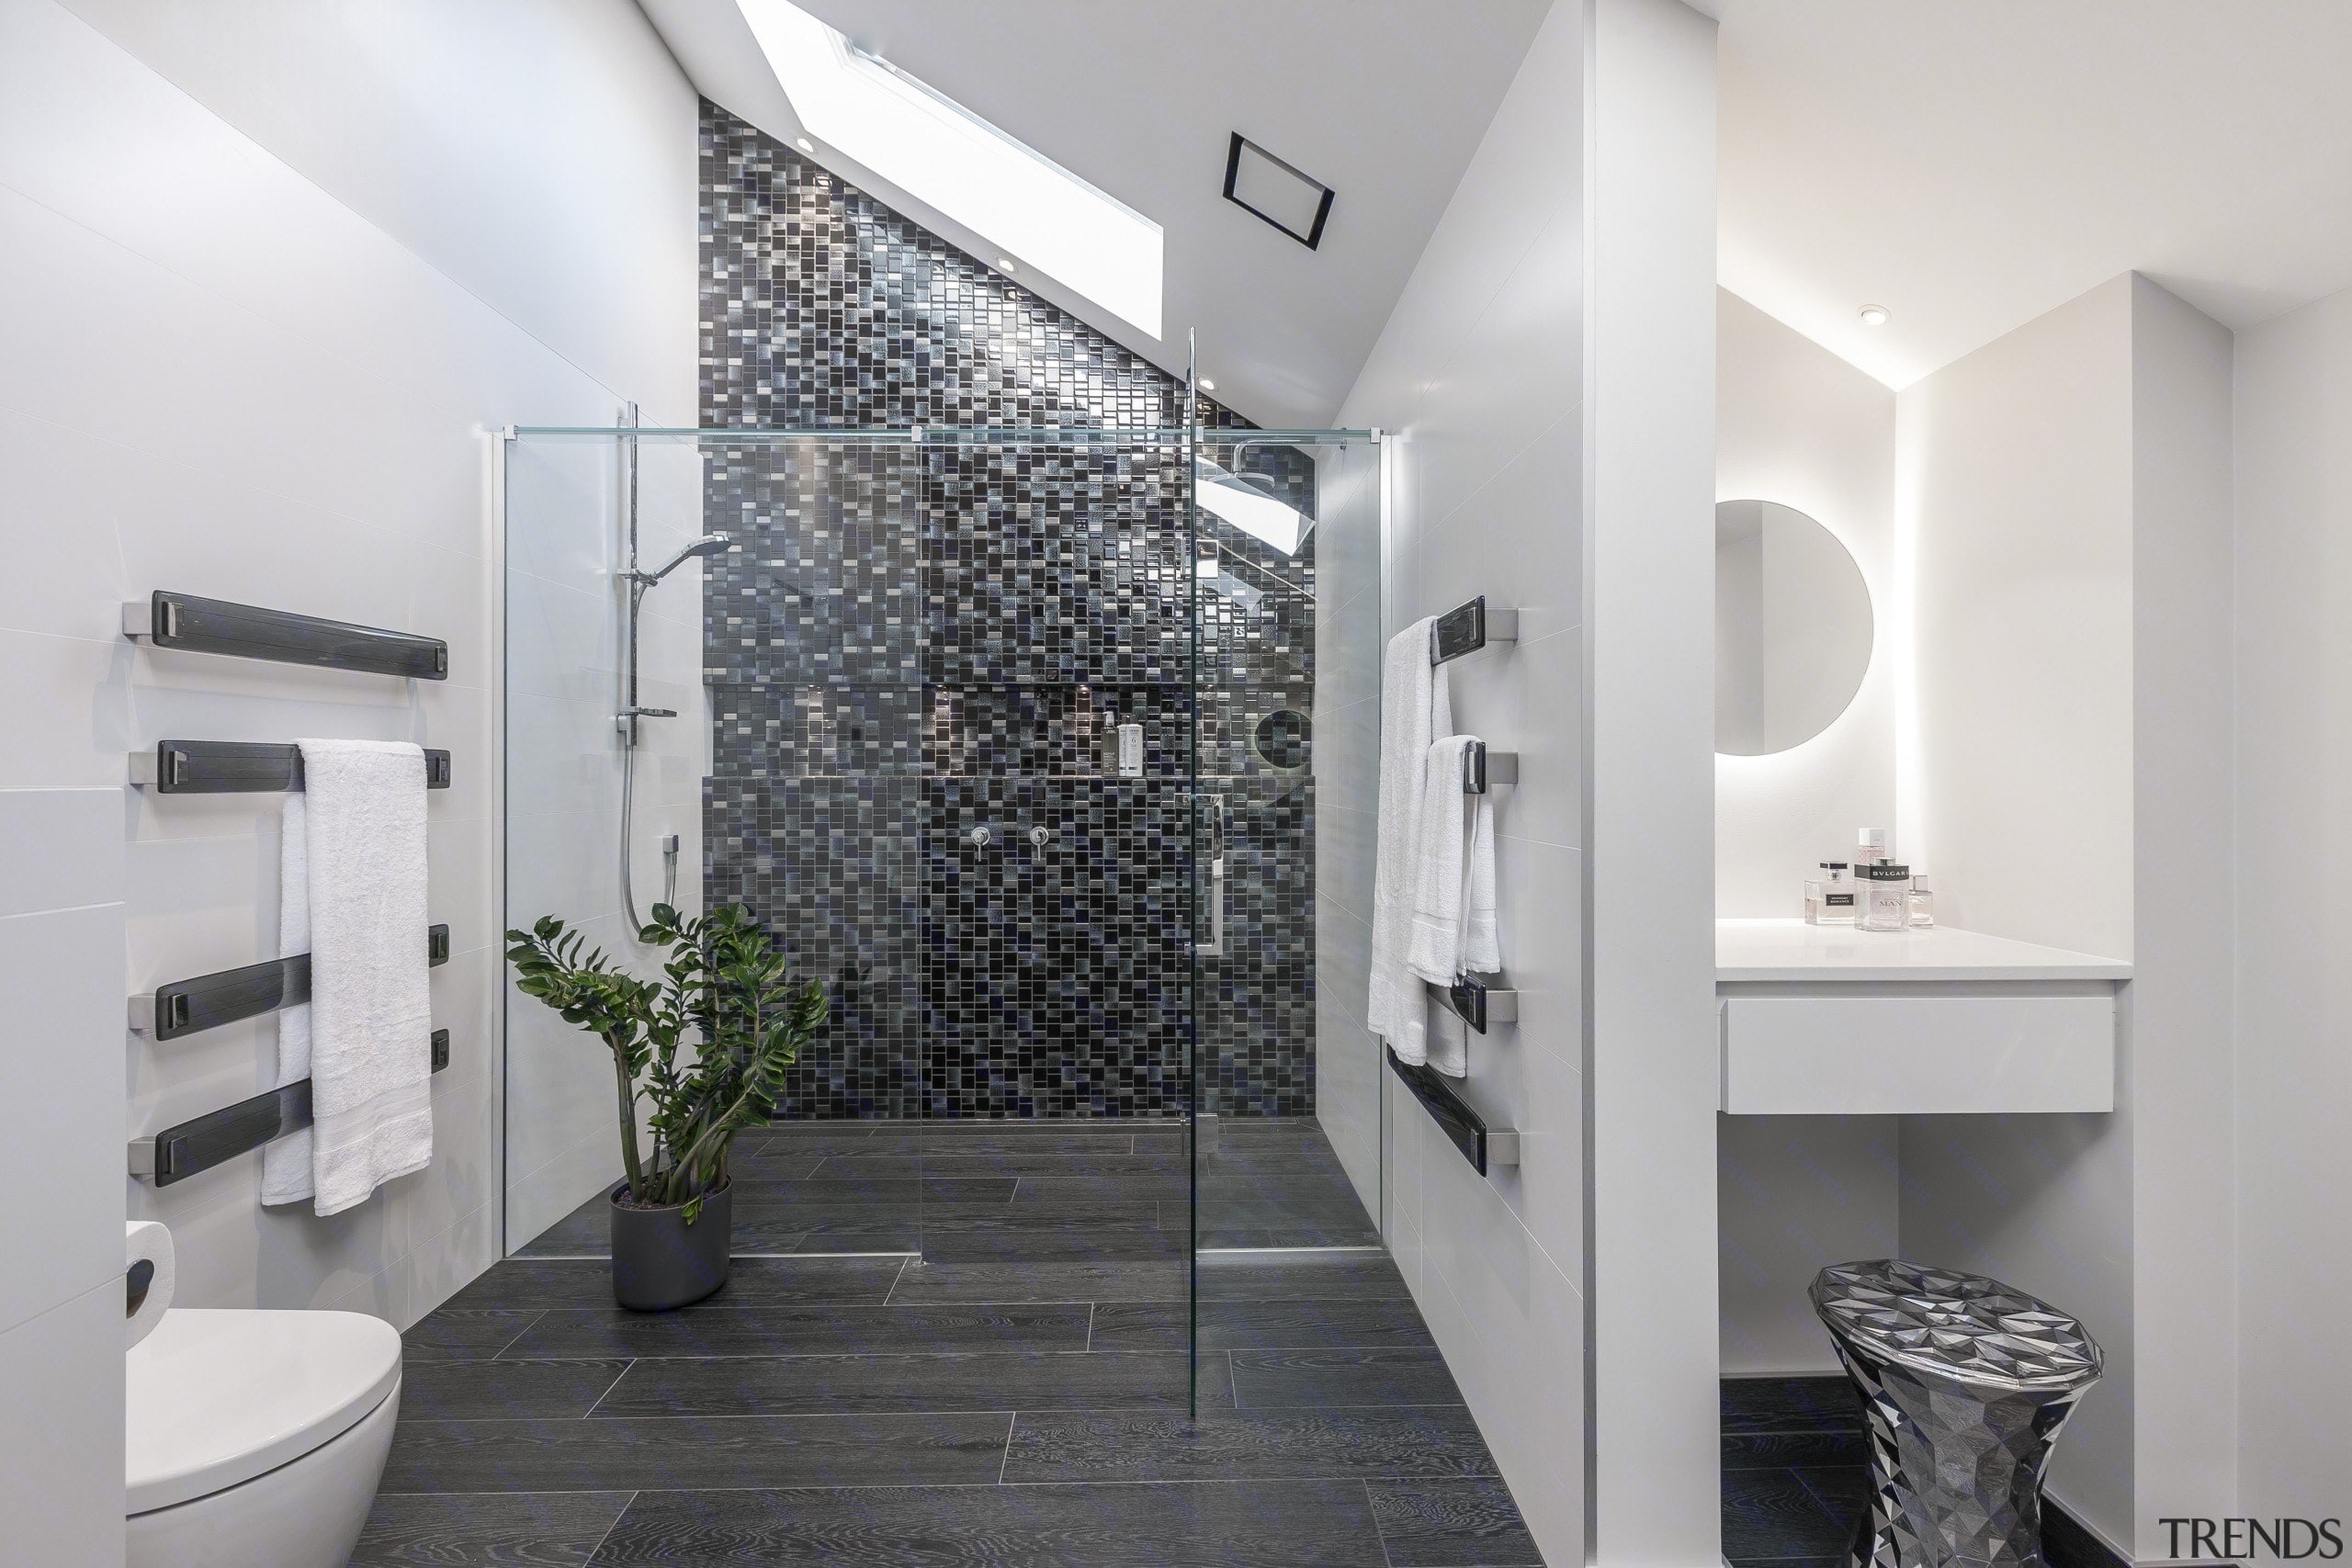 See more here architecture, bathroom, floor, home, interior design, real estate, room, tile, wall, white, gray